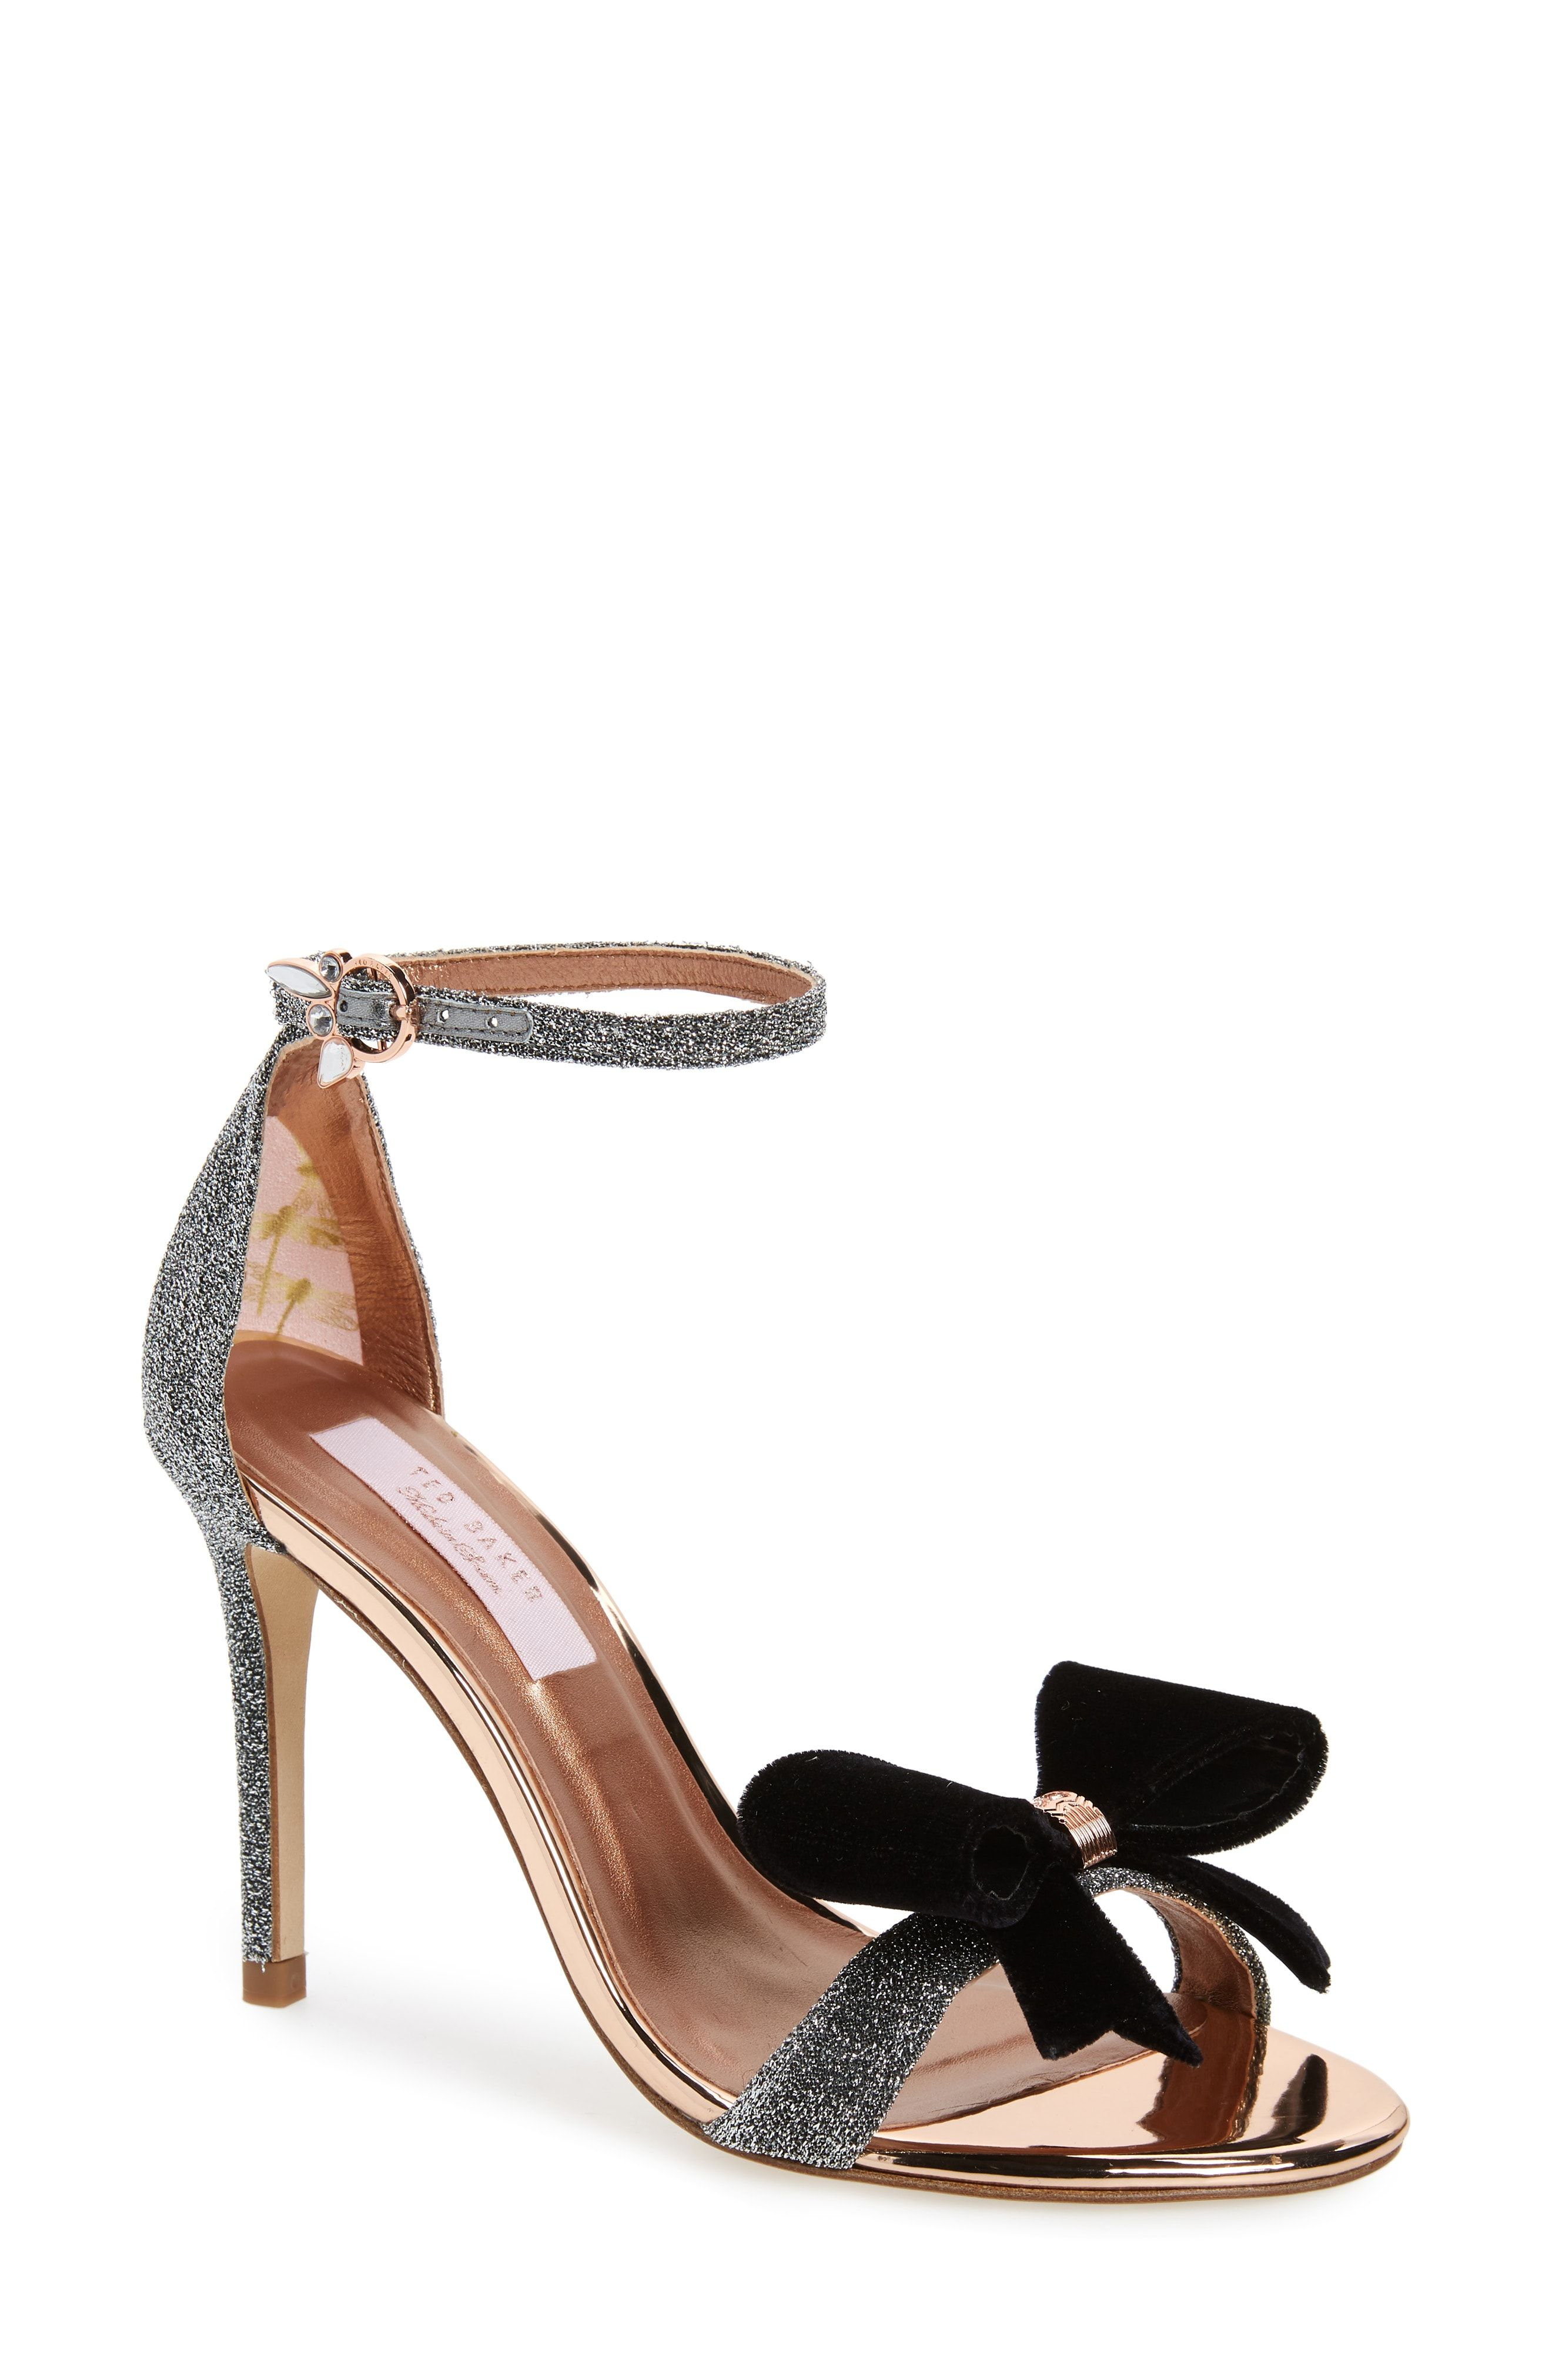 c294e0075 Gorgeous Ted Baker London Bowdalo Sandals perfect for the holidays ...